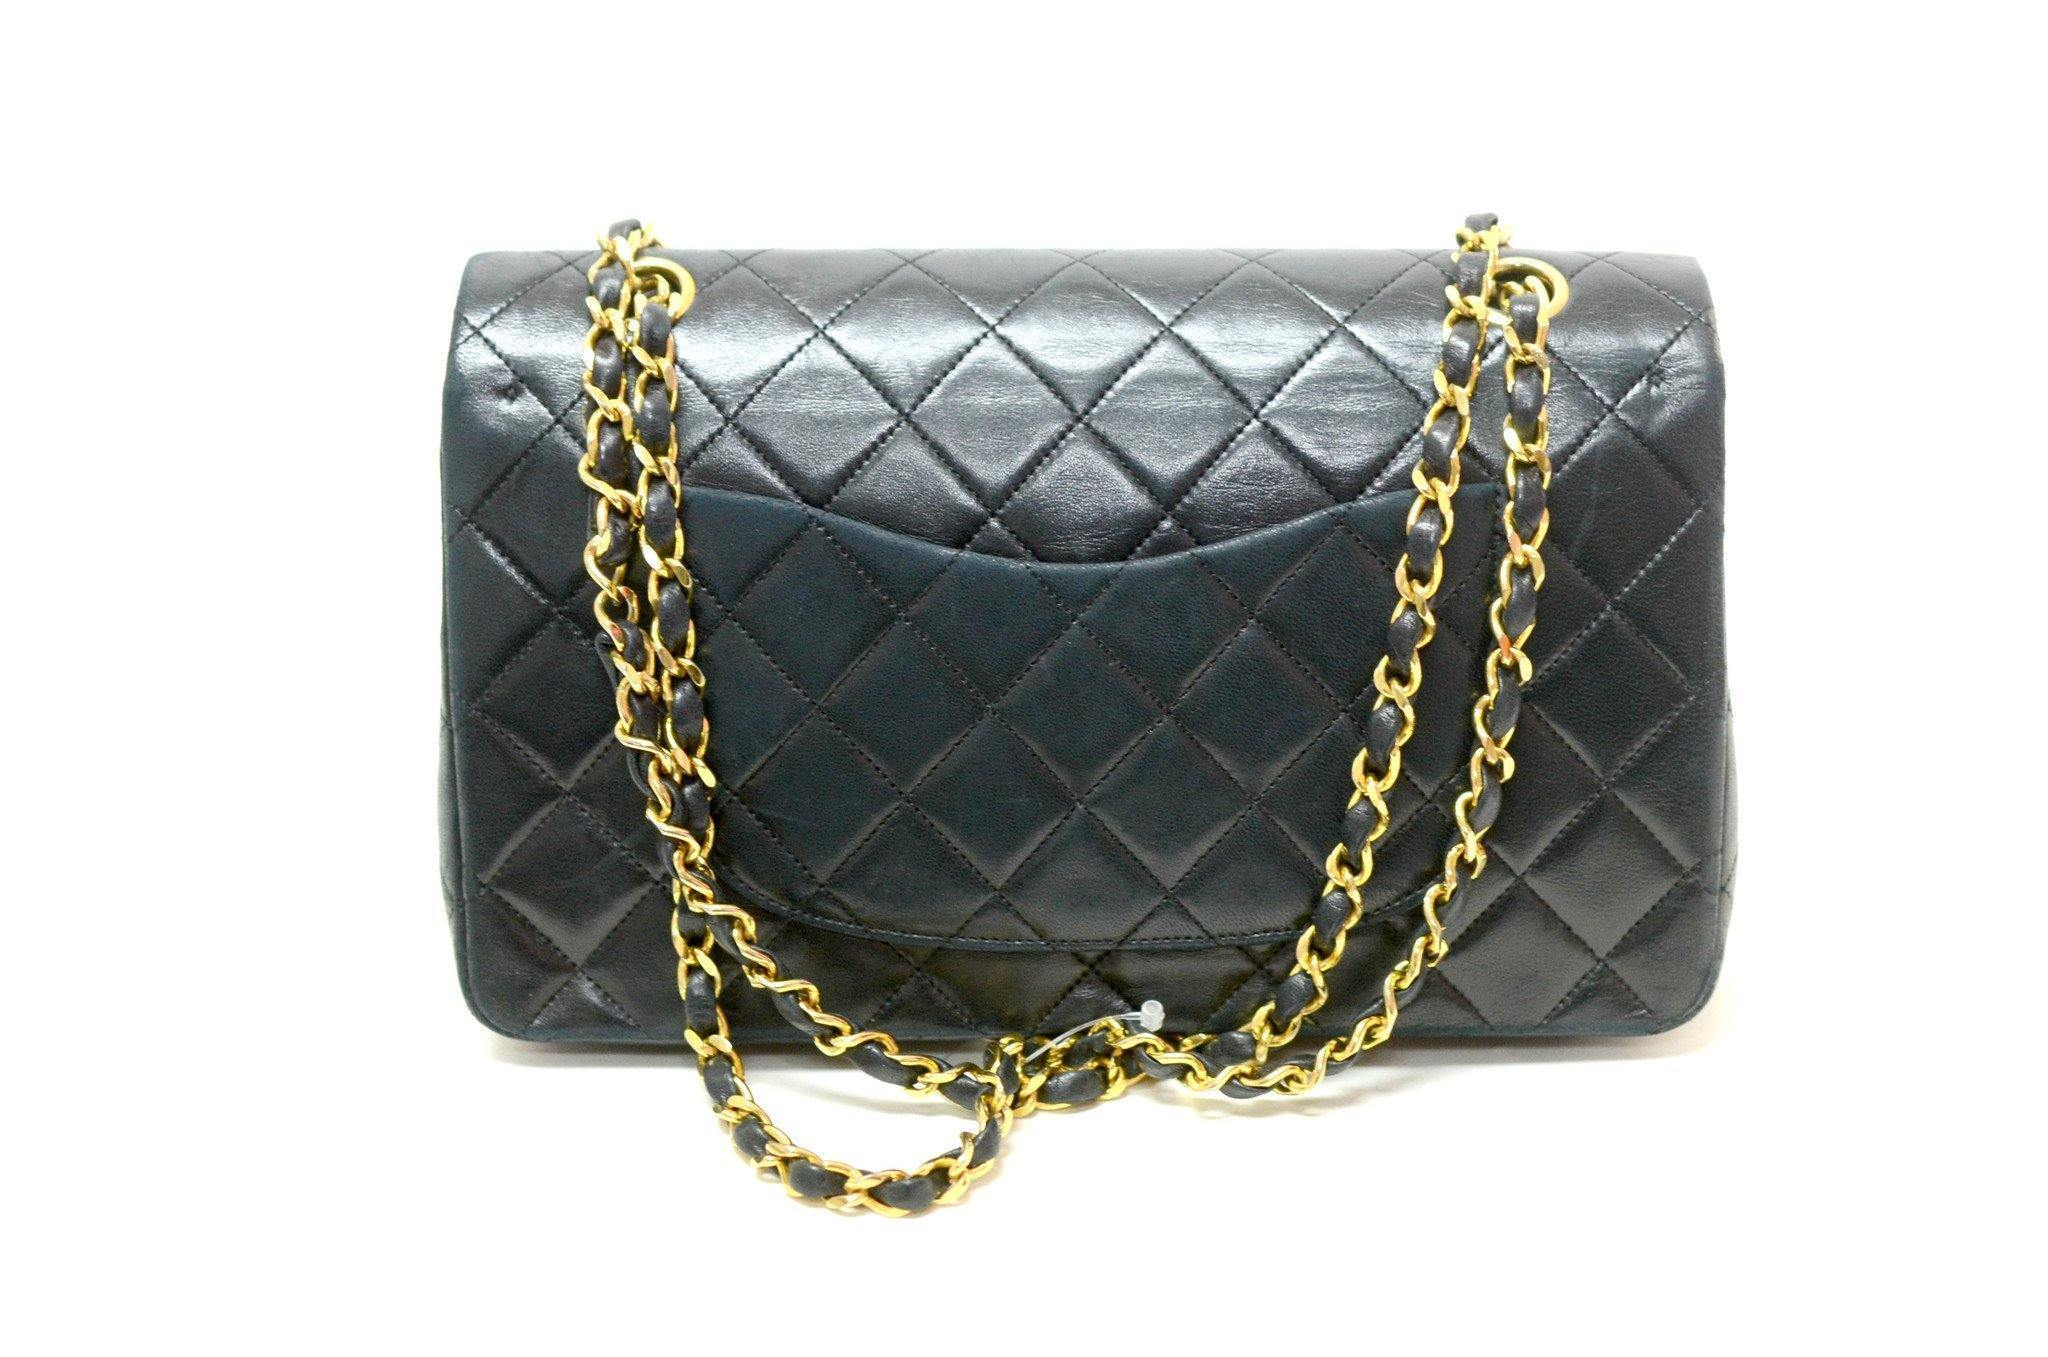 150800930d88 Authentic Vintage Chanel 25cm Bag in Black Calf Leather with Gold Hardware